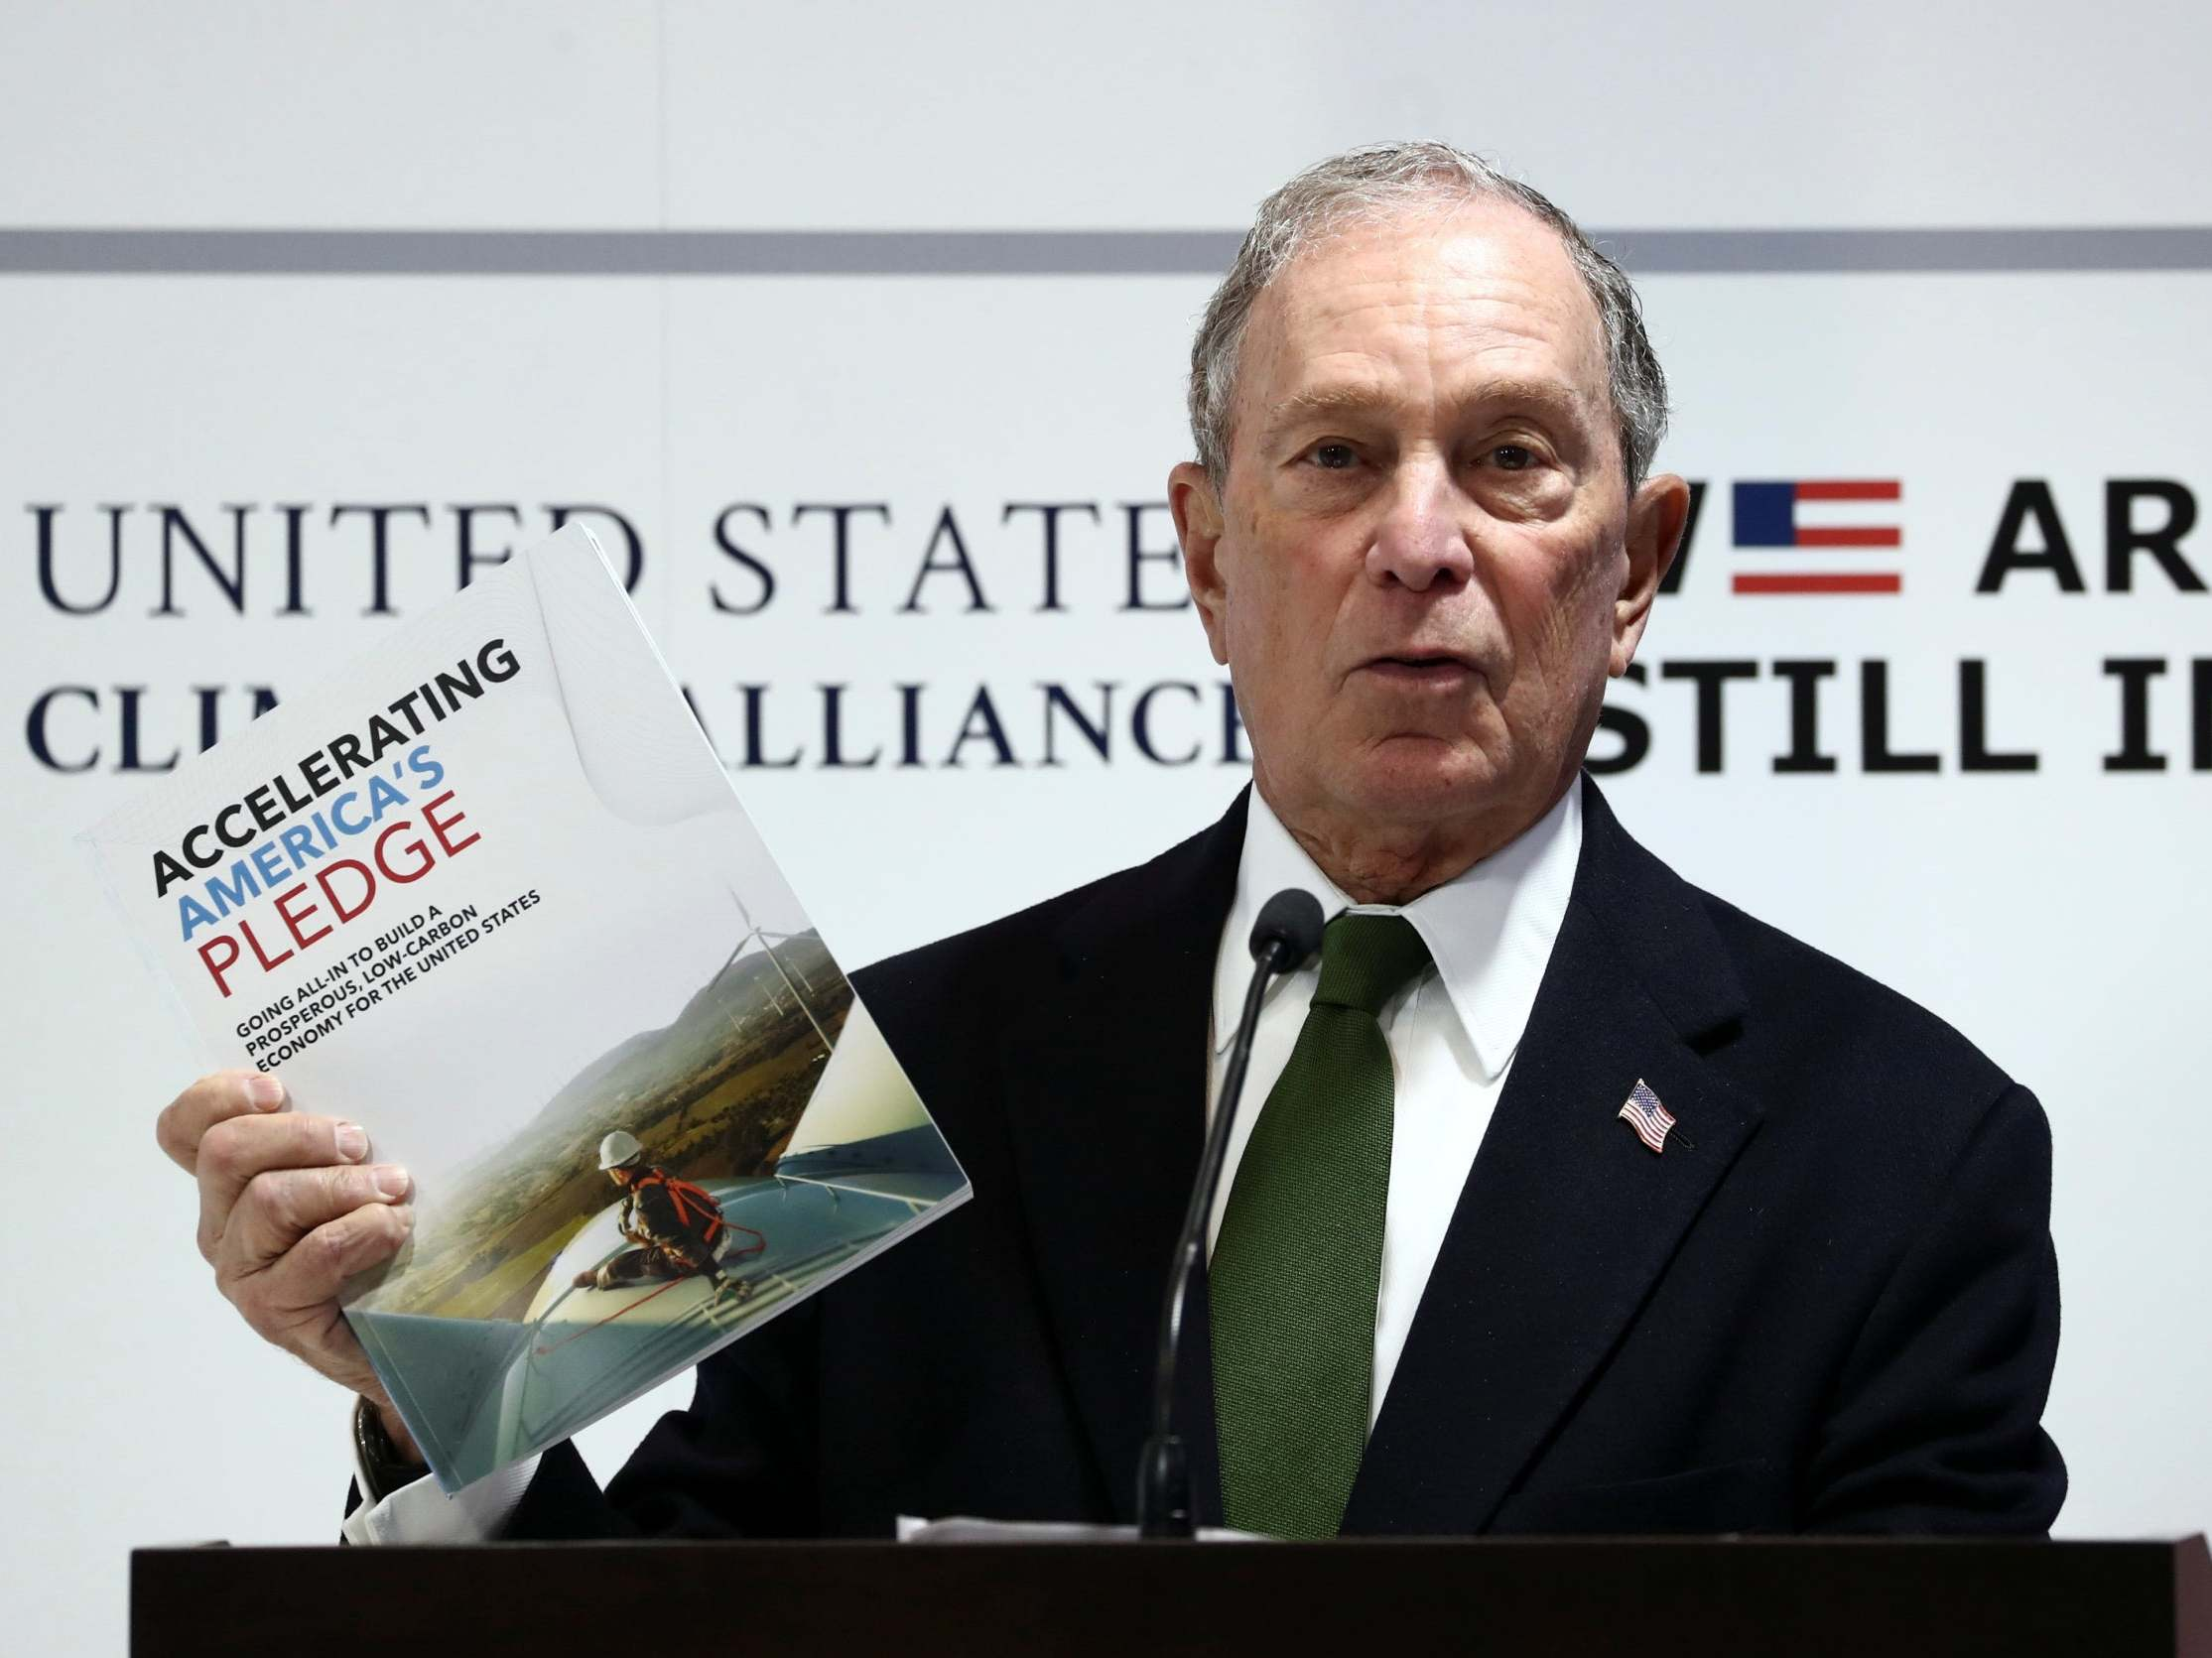 In Trump's absence, presidential hopeful Bloomberg takes centre stage at key climate summit